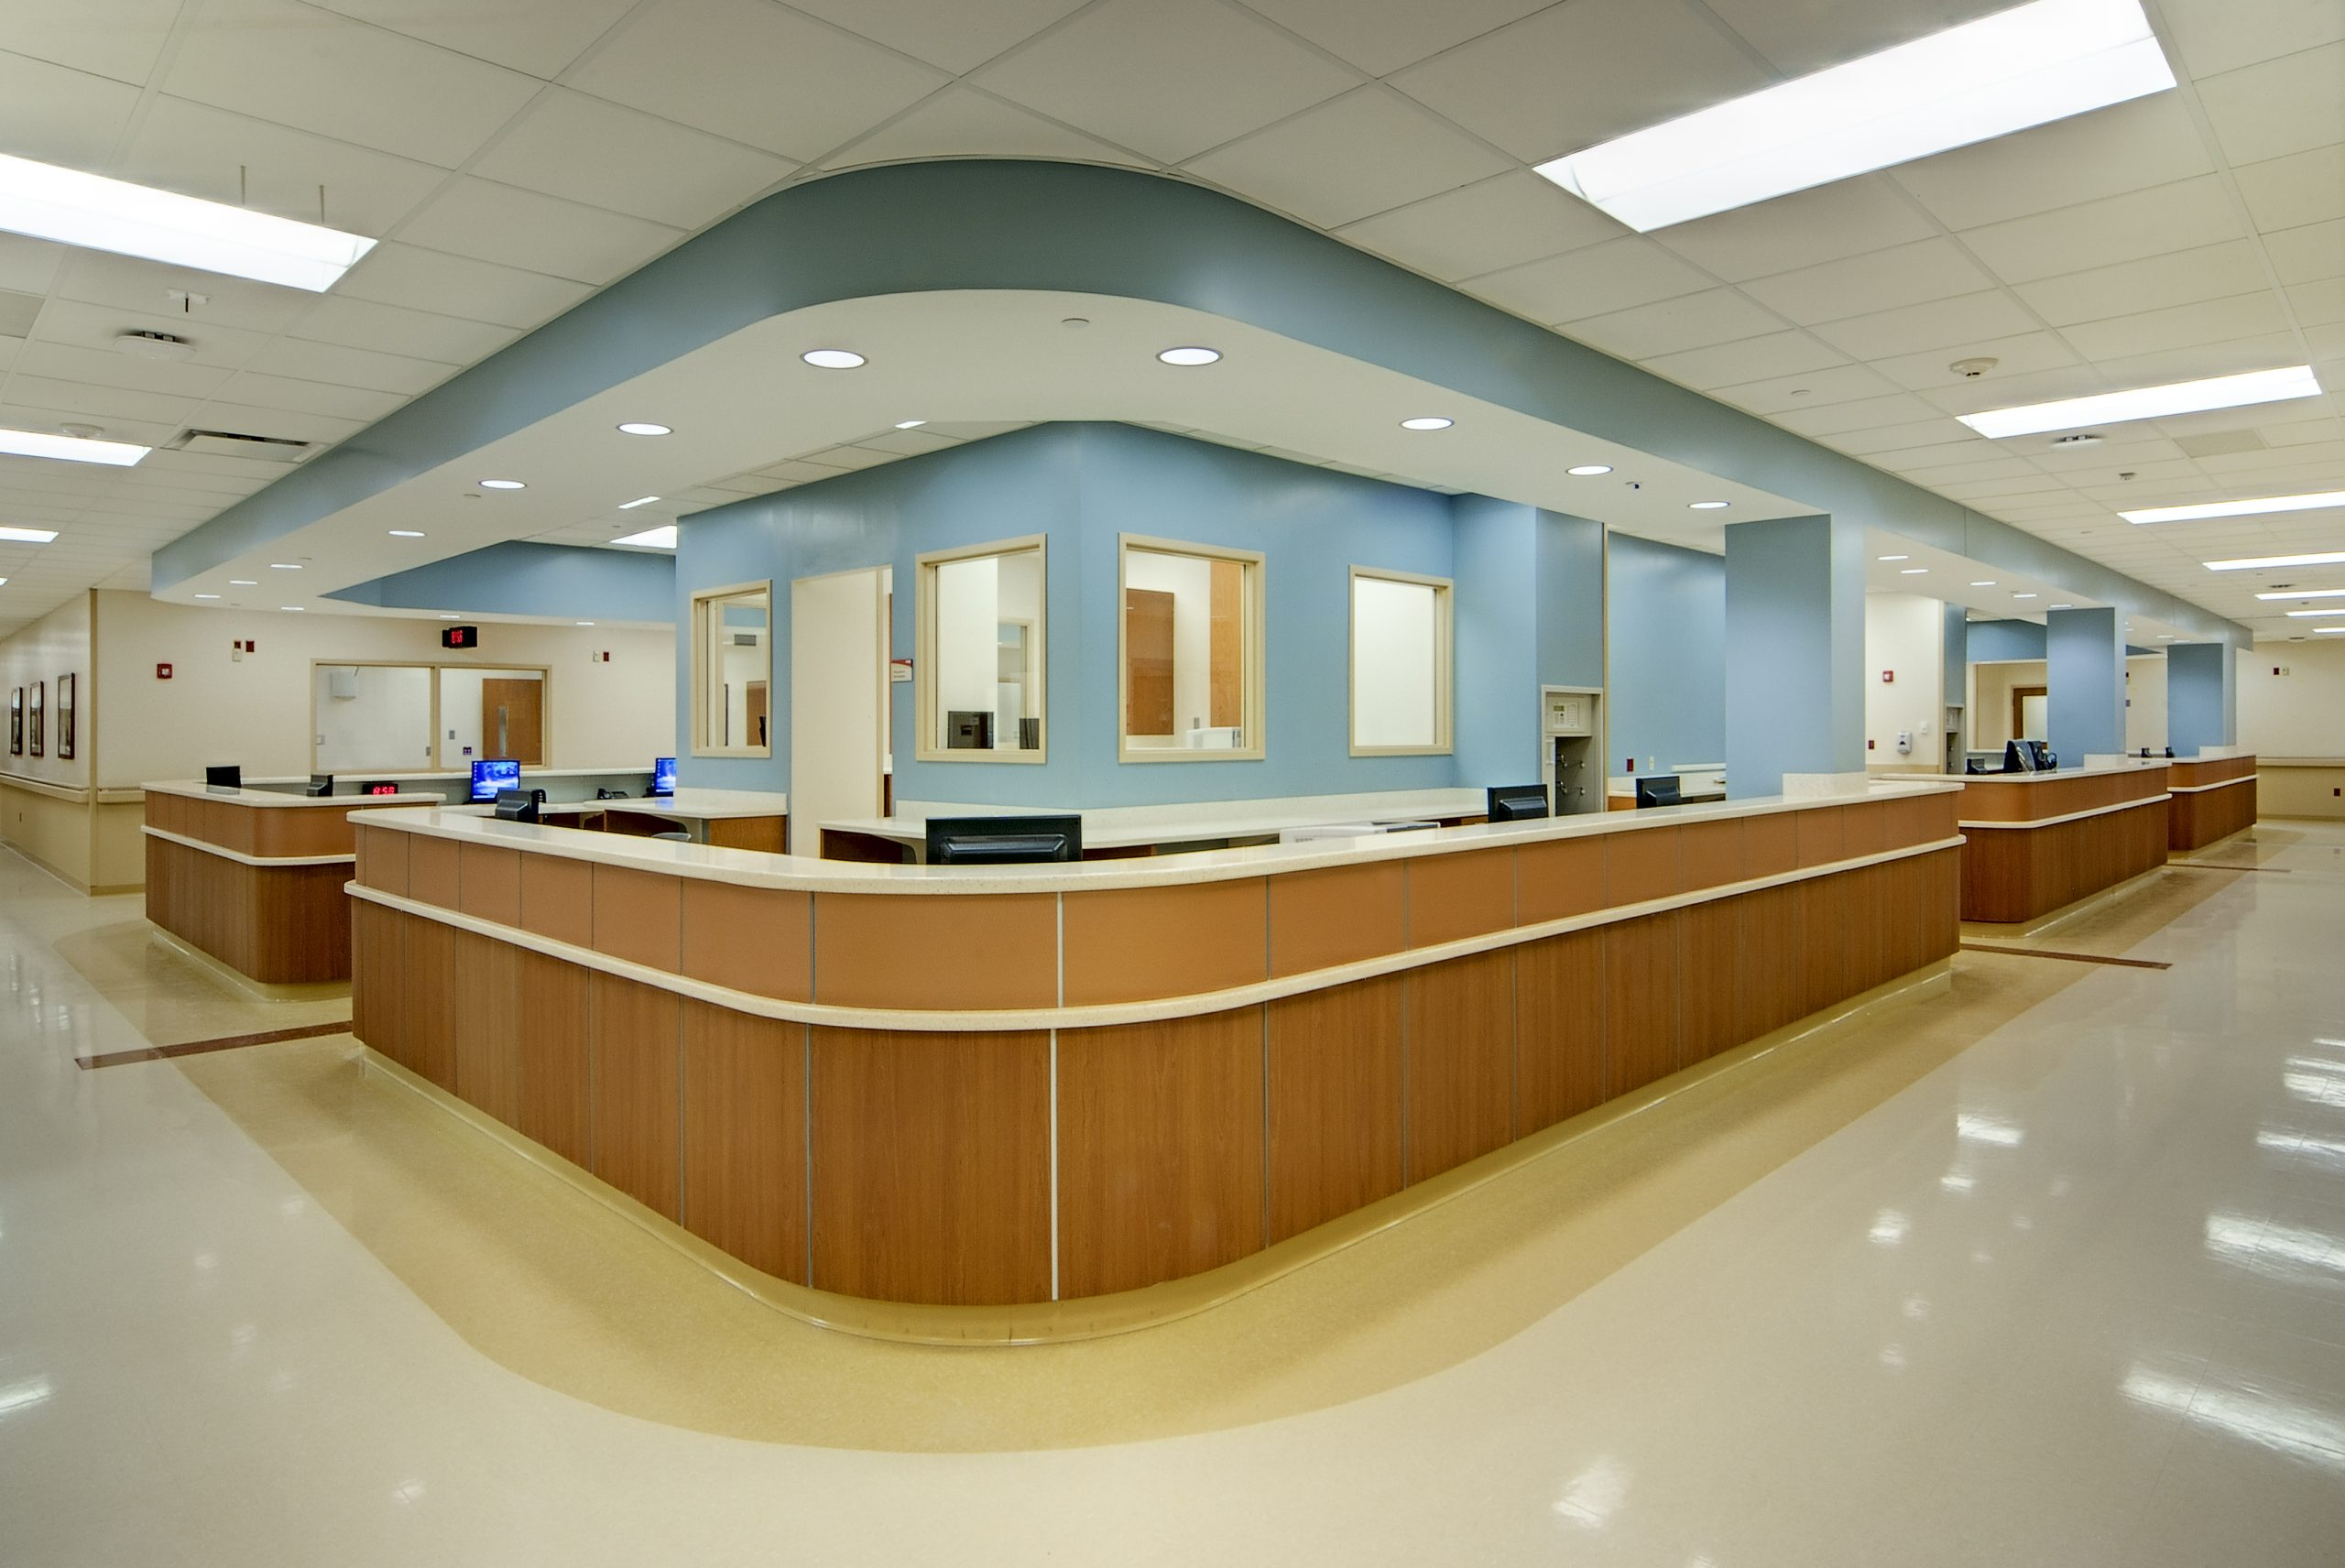 Volume 1: Designing Emergency Departments that Improve Staff Productivity